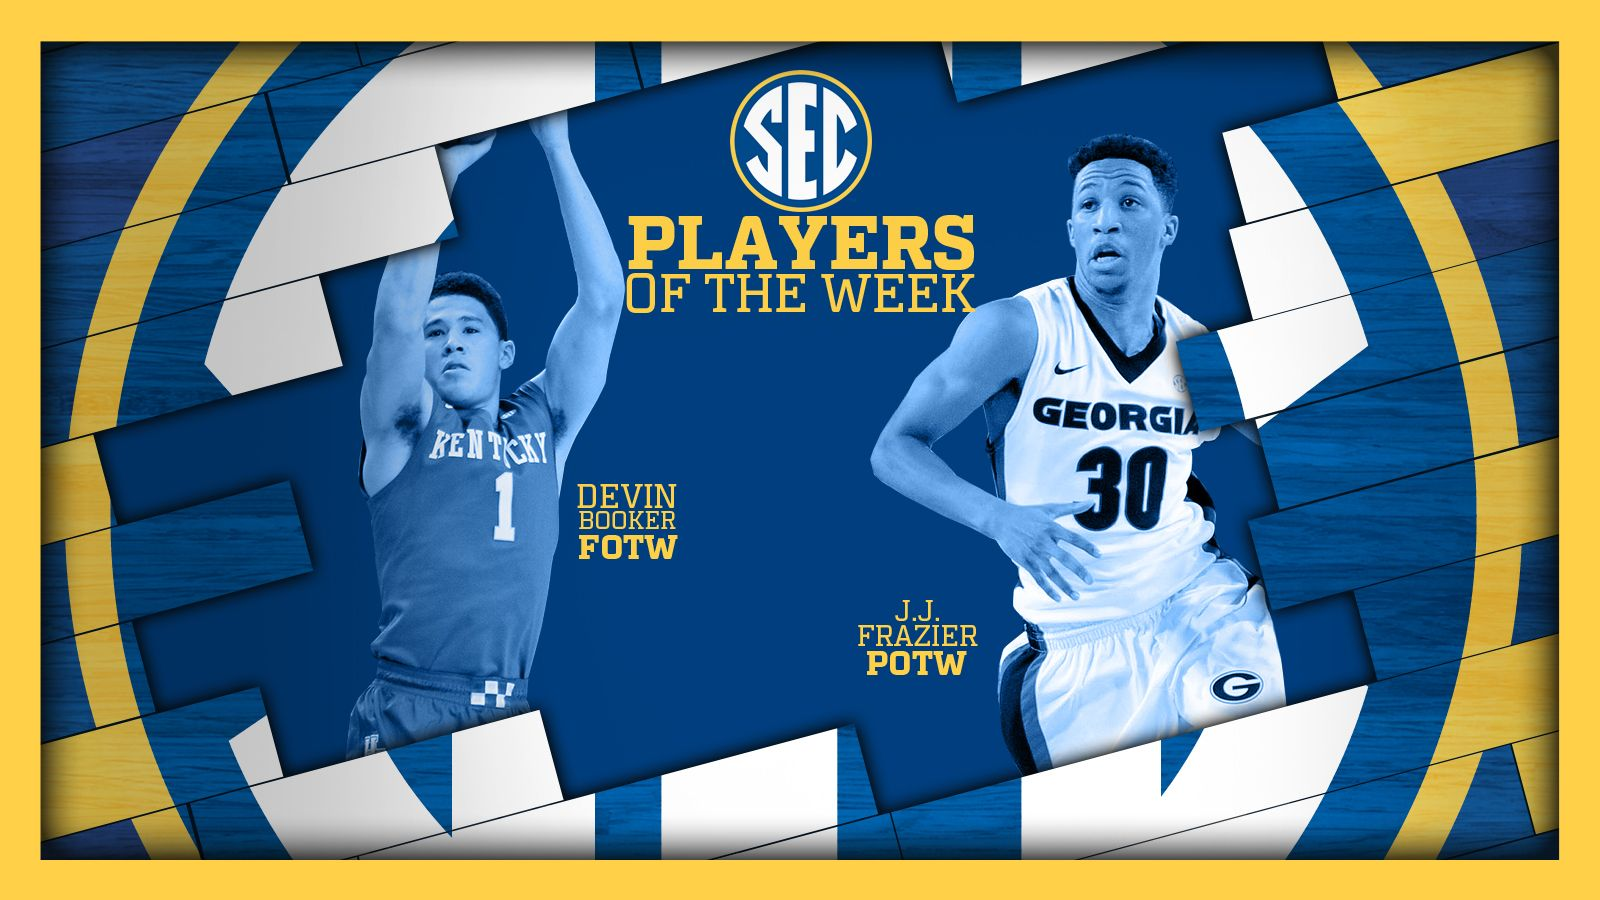 Frazier and Booker named Players of the Week